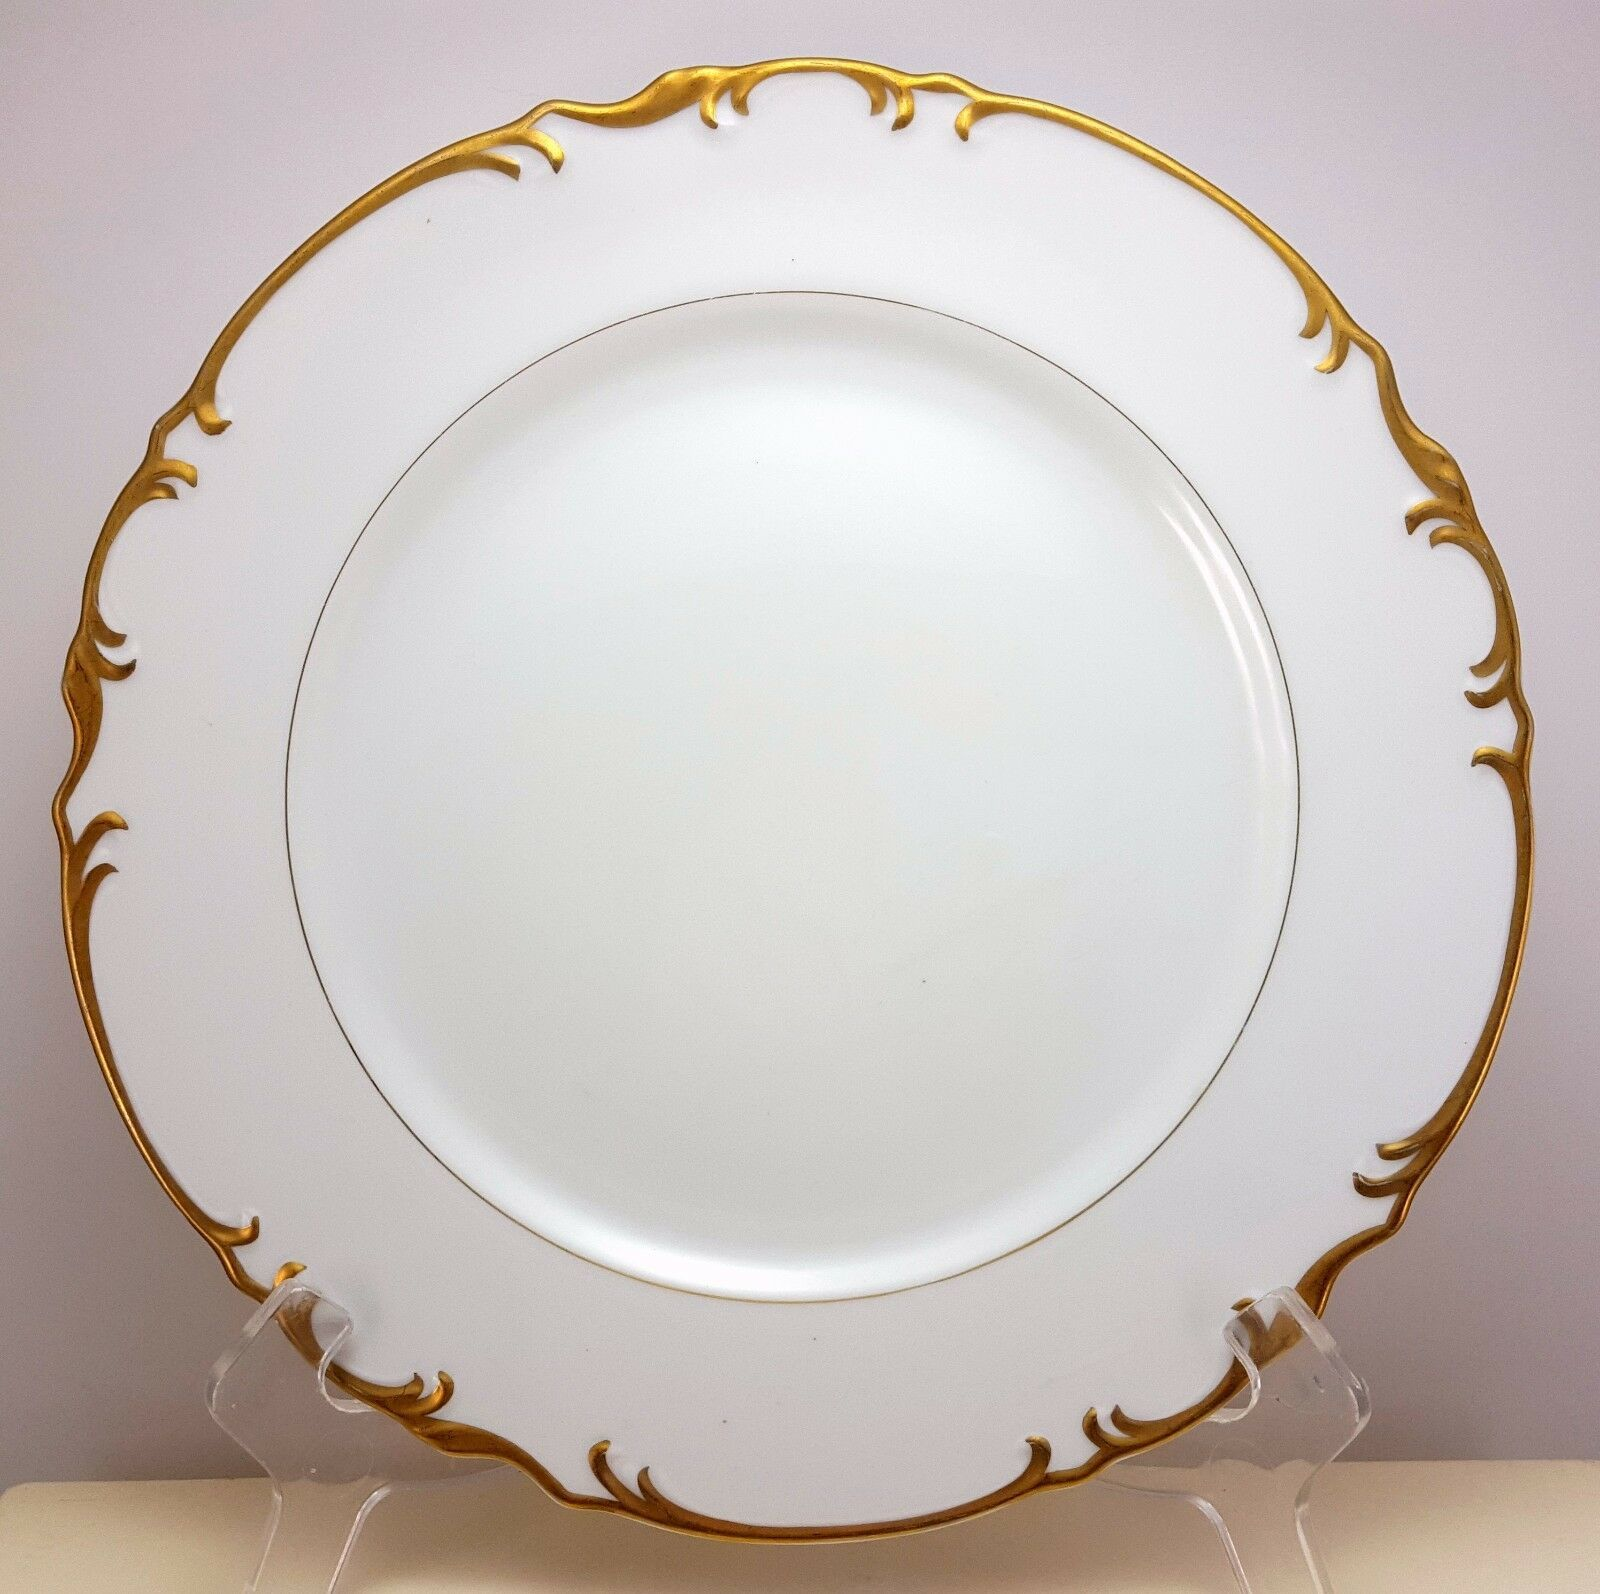 "Primary image for Mikasa Venice Dinner Plate 10-3/8""  White Fine China Gold Trim 9266"